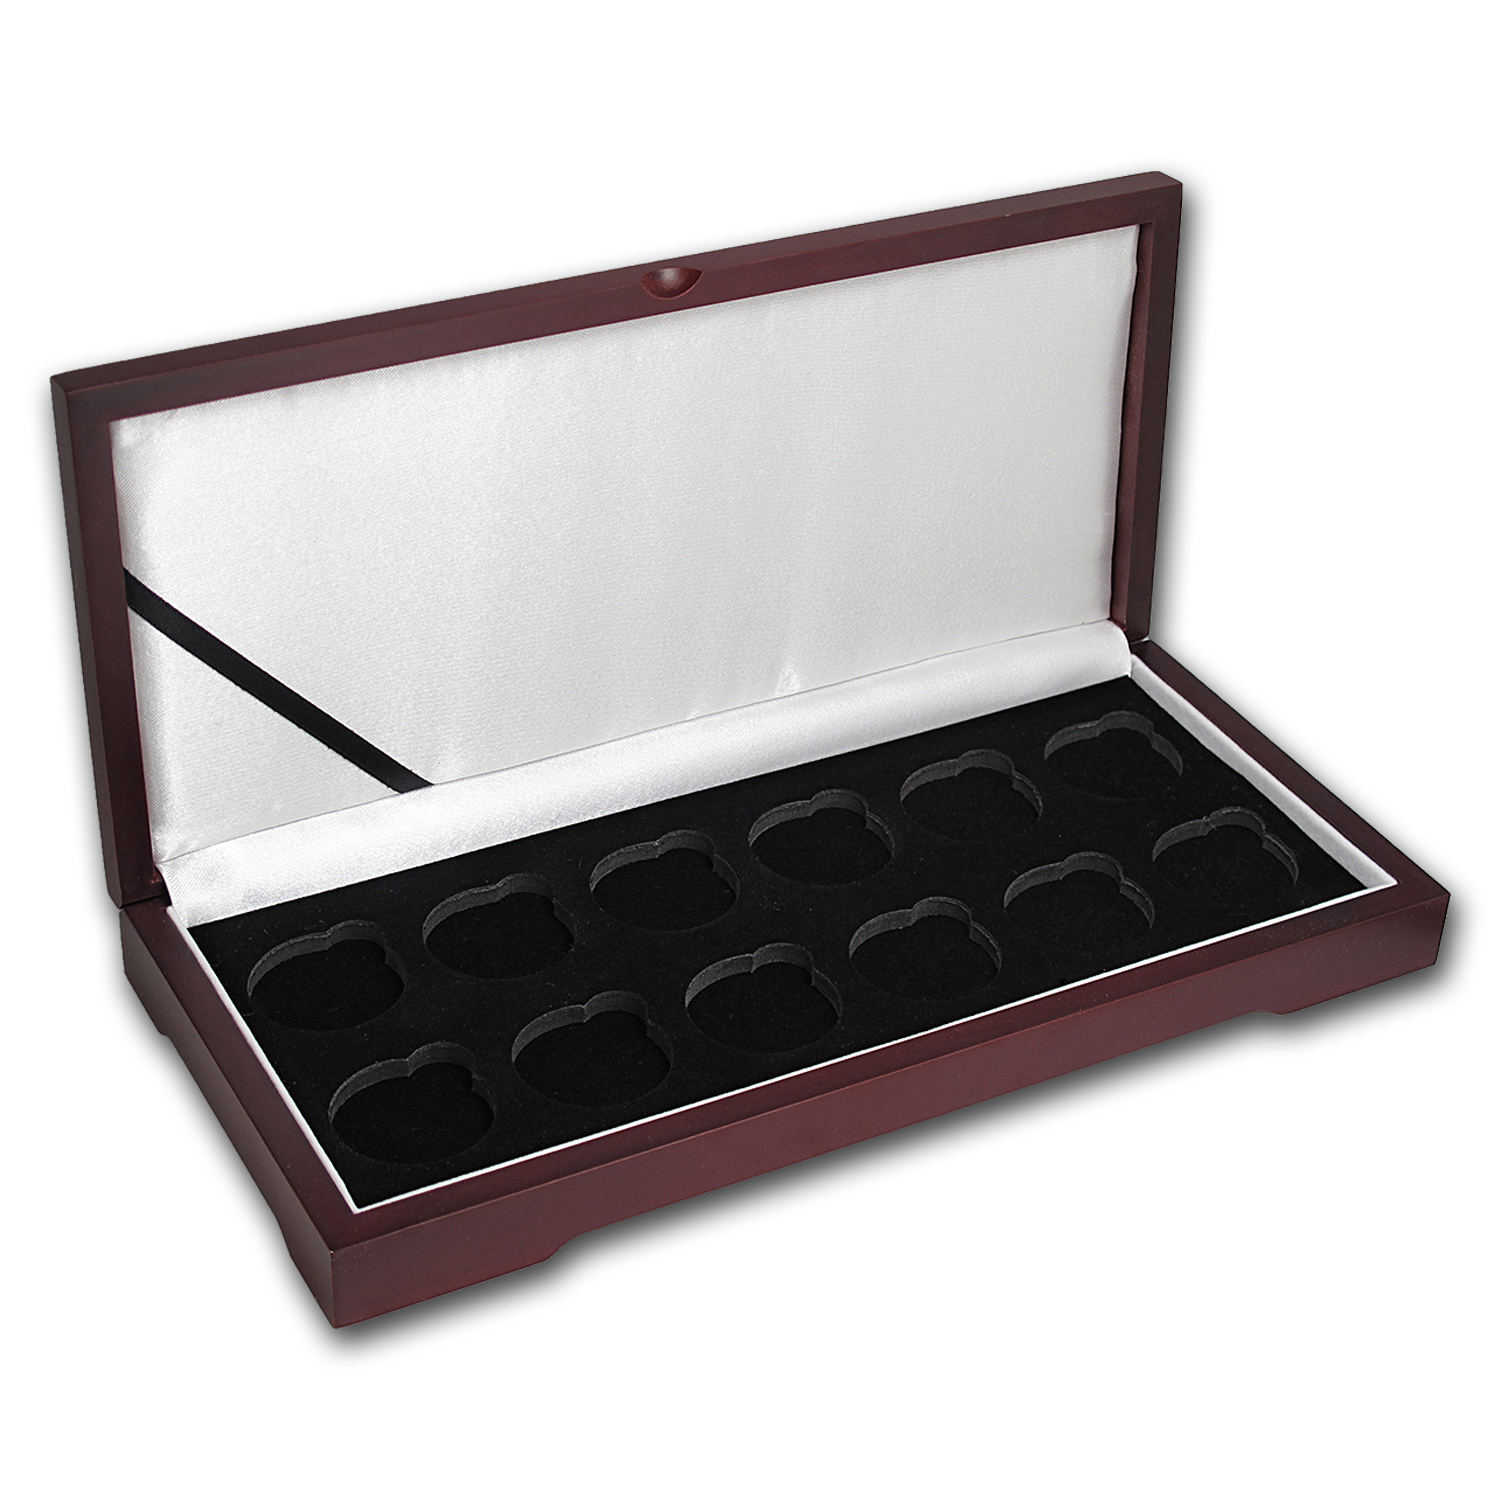 Lunar Series I (1 oz Gold) 12 Coin Wood Presentation Box